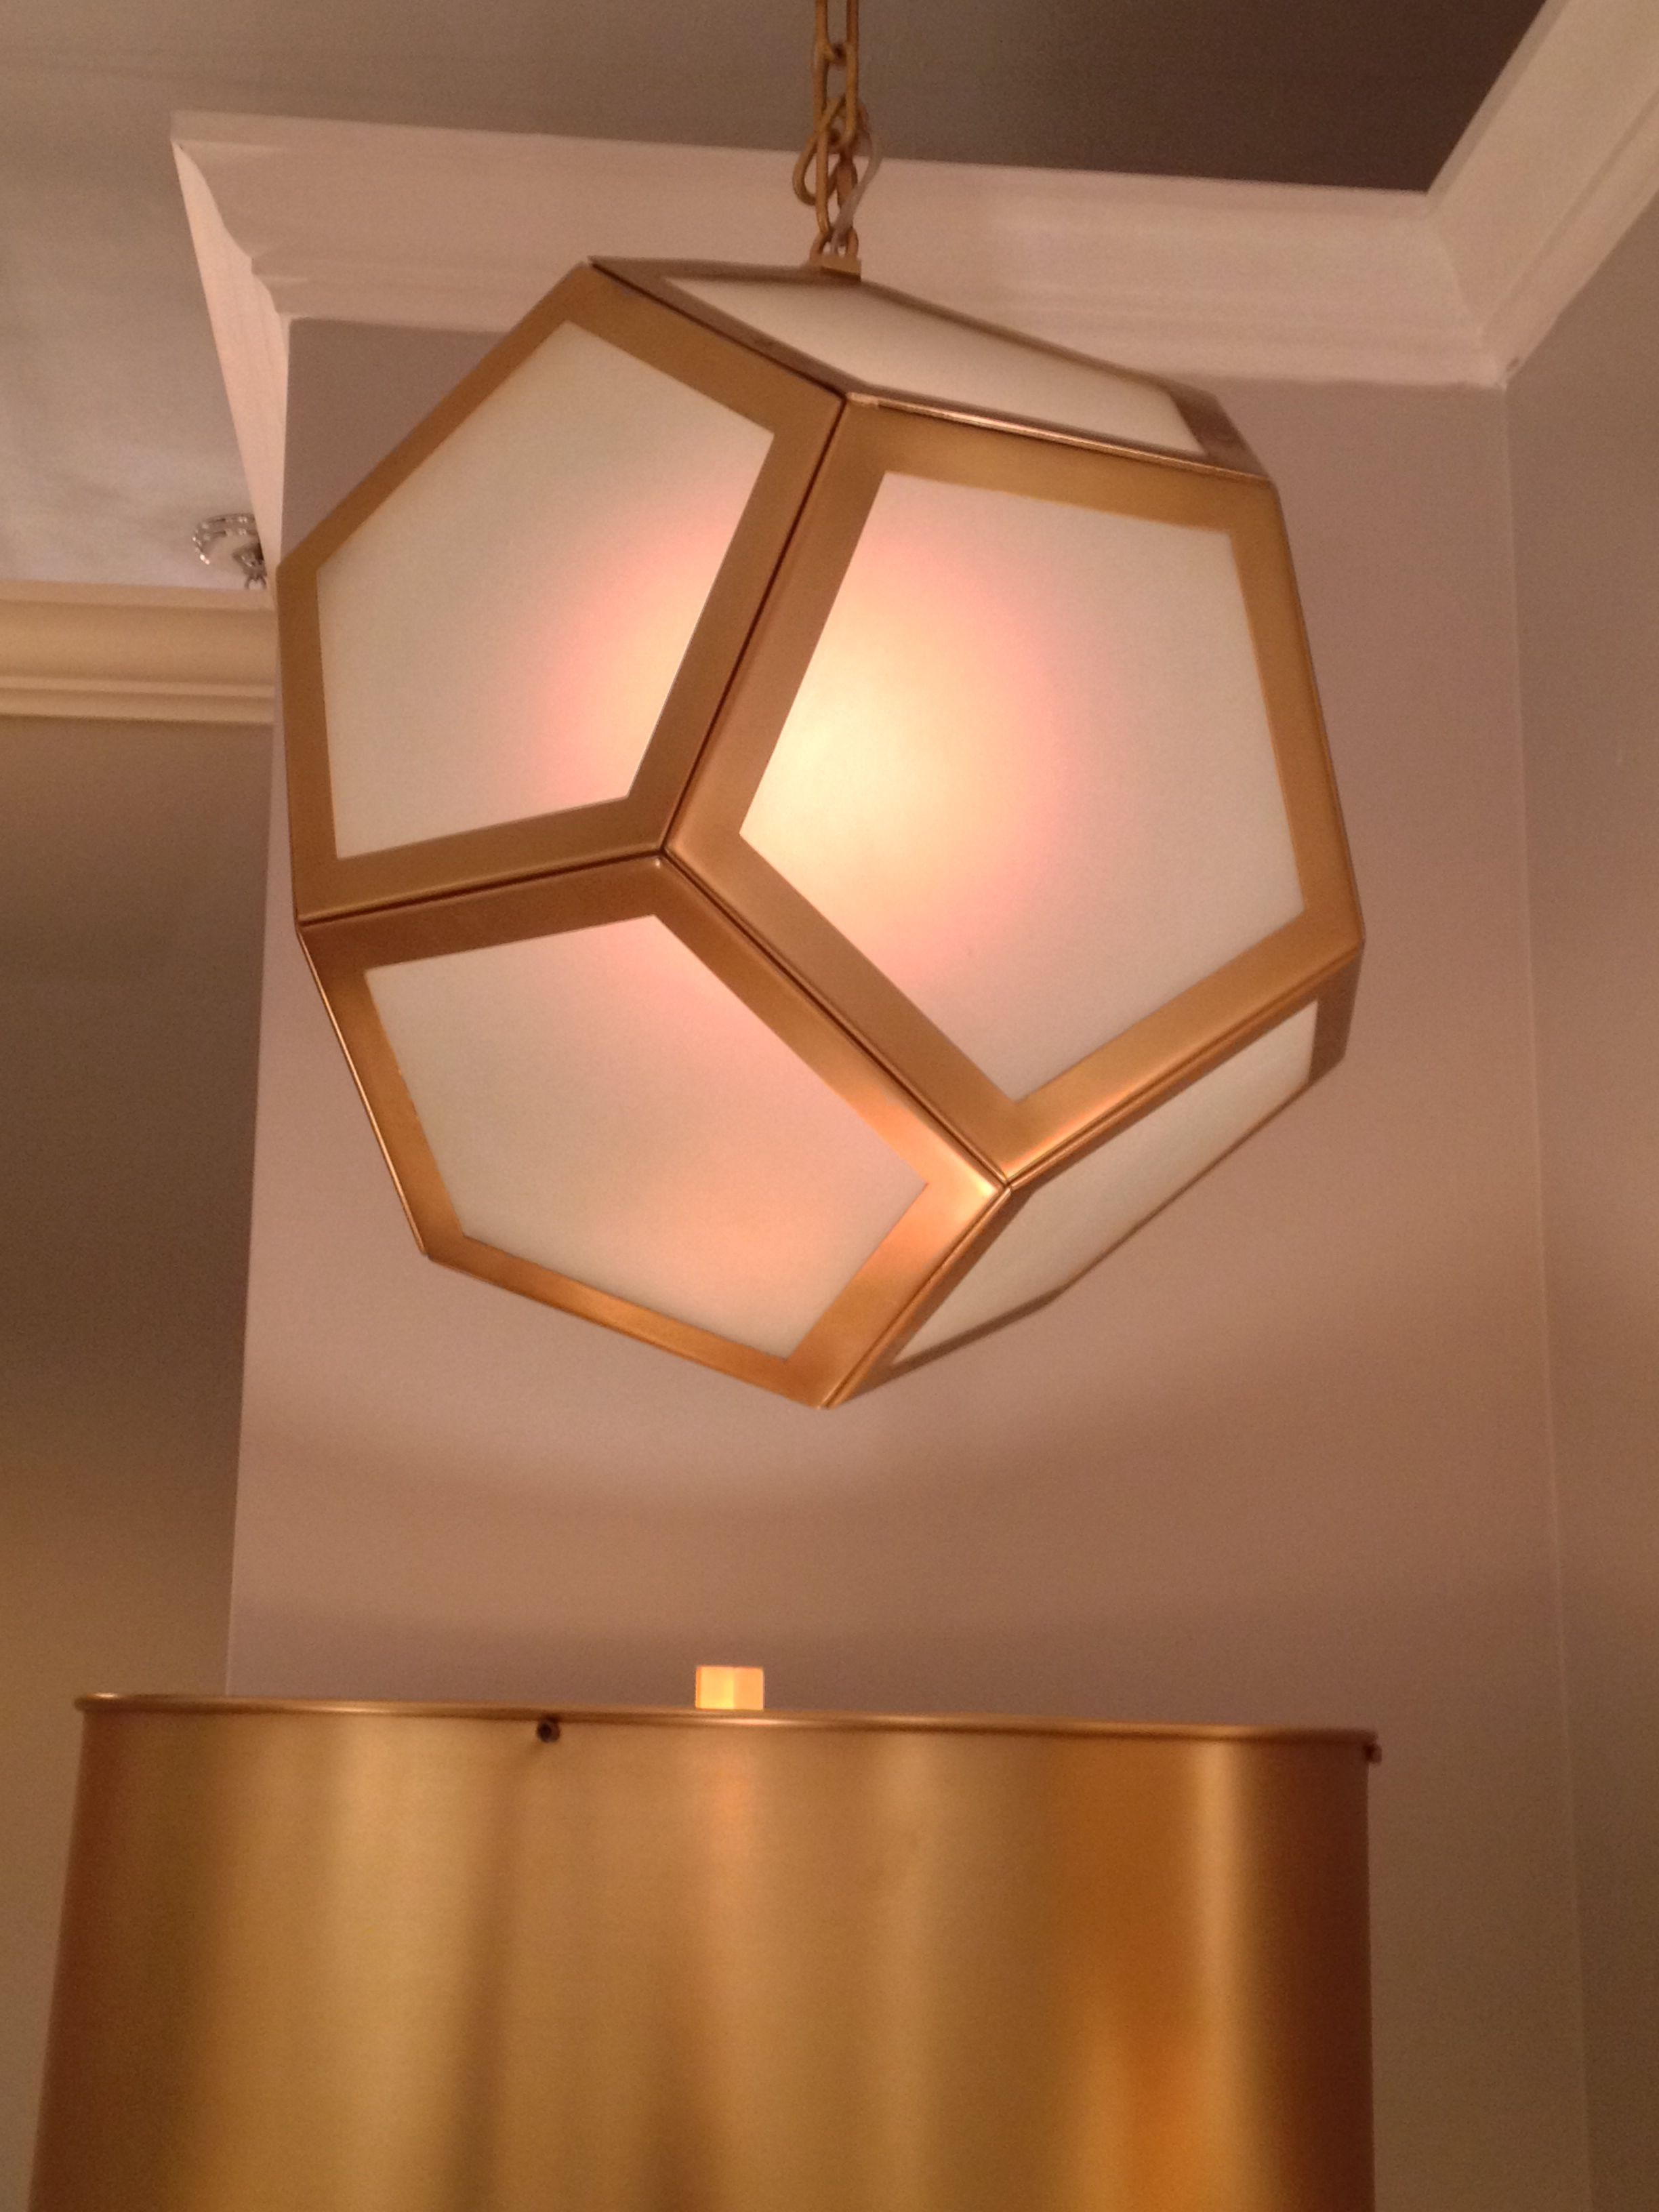 From robert abbey pythagoras pendant by mary macdonald buy at y lighting option for kitchen island